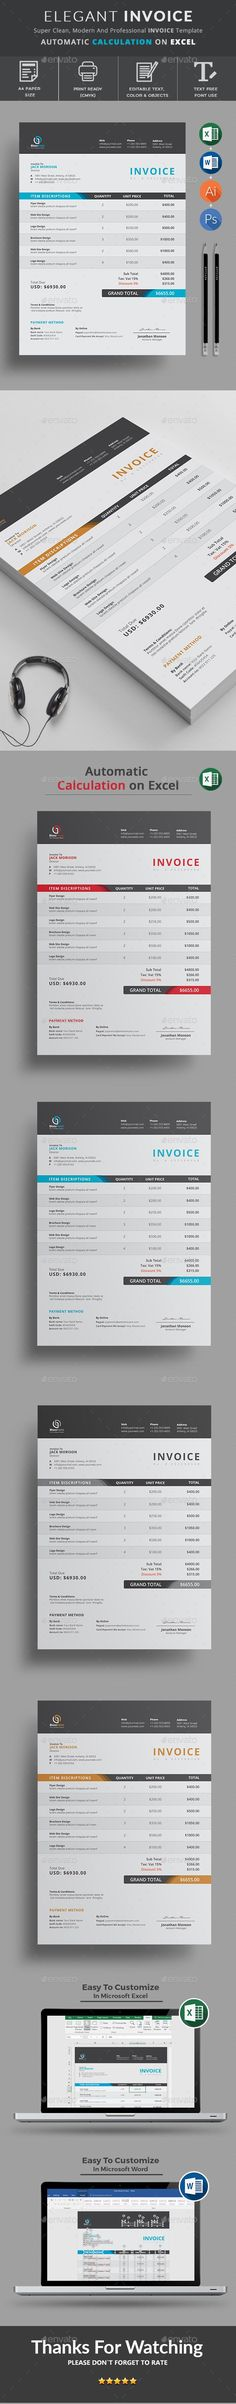 Invoice Like A Pro Design Examples and Best Practices Ui design - use of an invoice